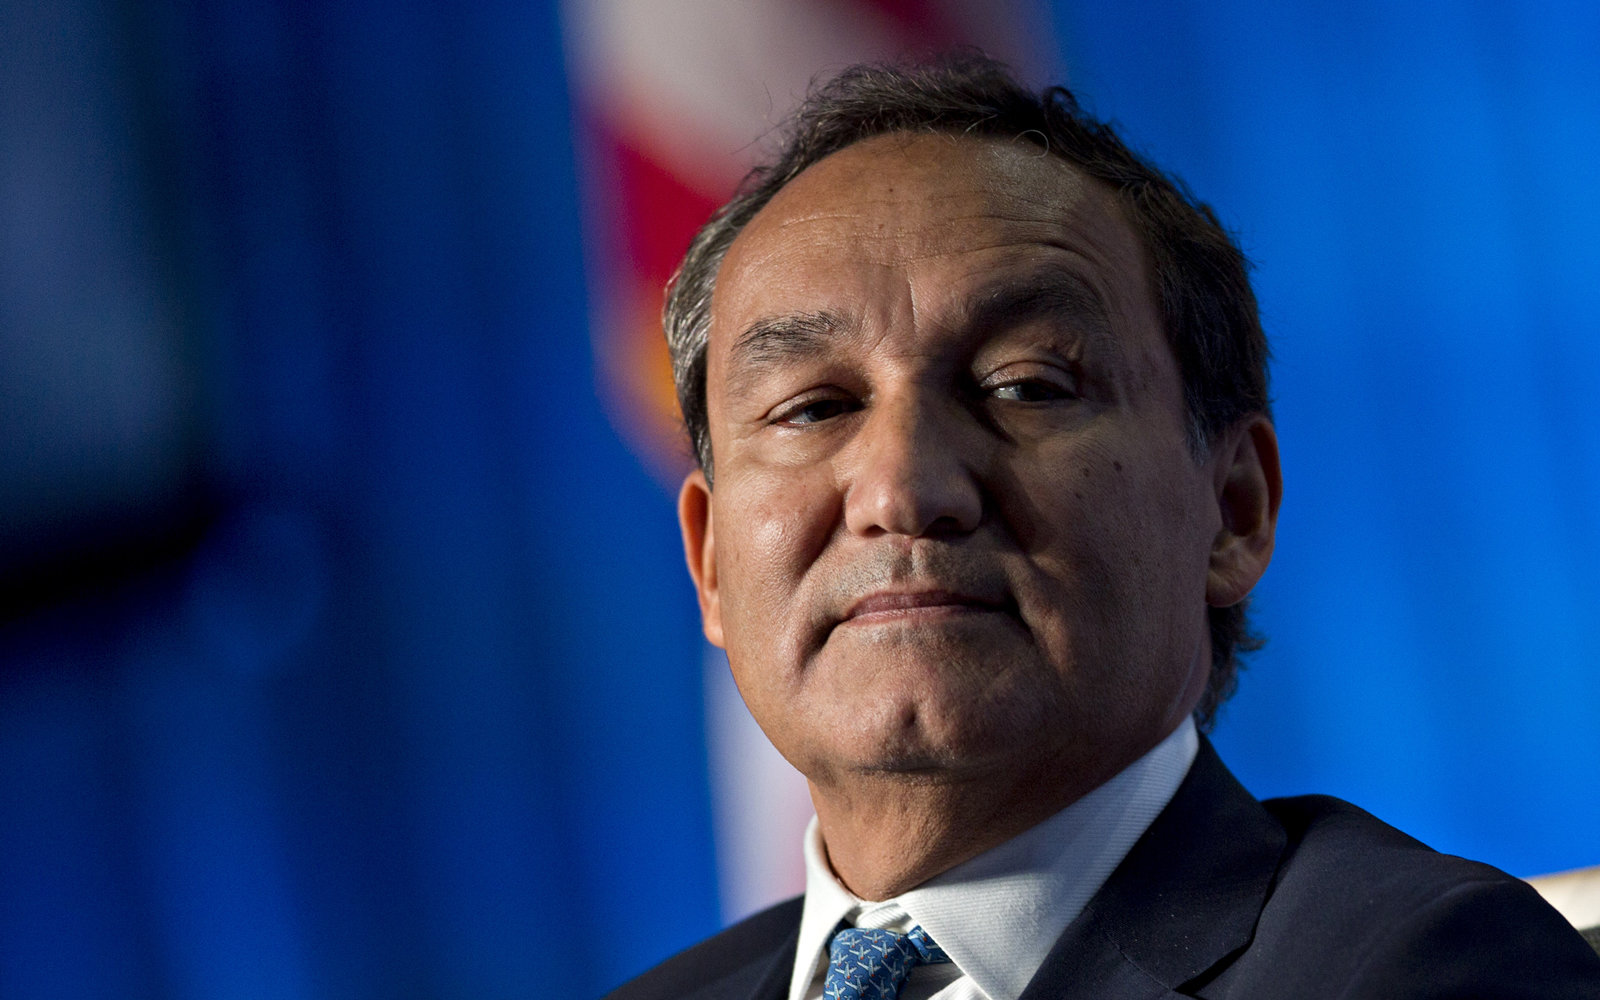 Oscar Munoz to be questioned by Congress on May 2, 2017.